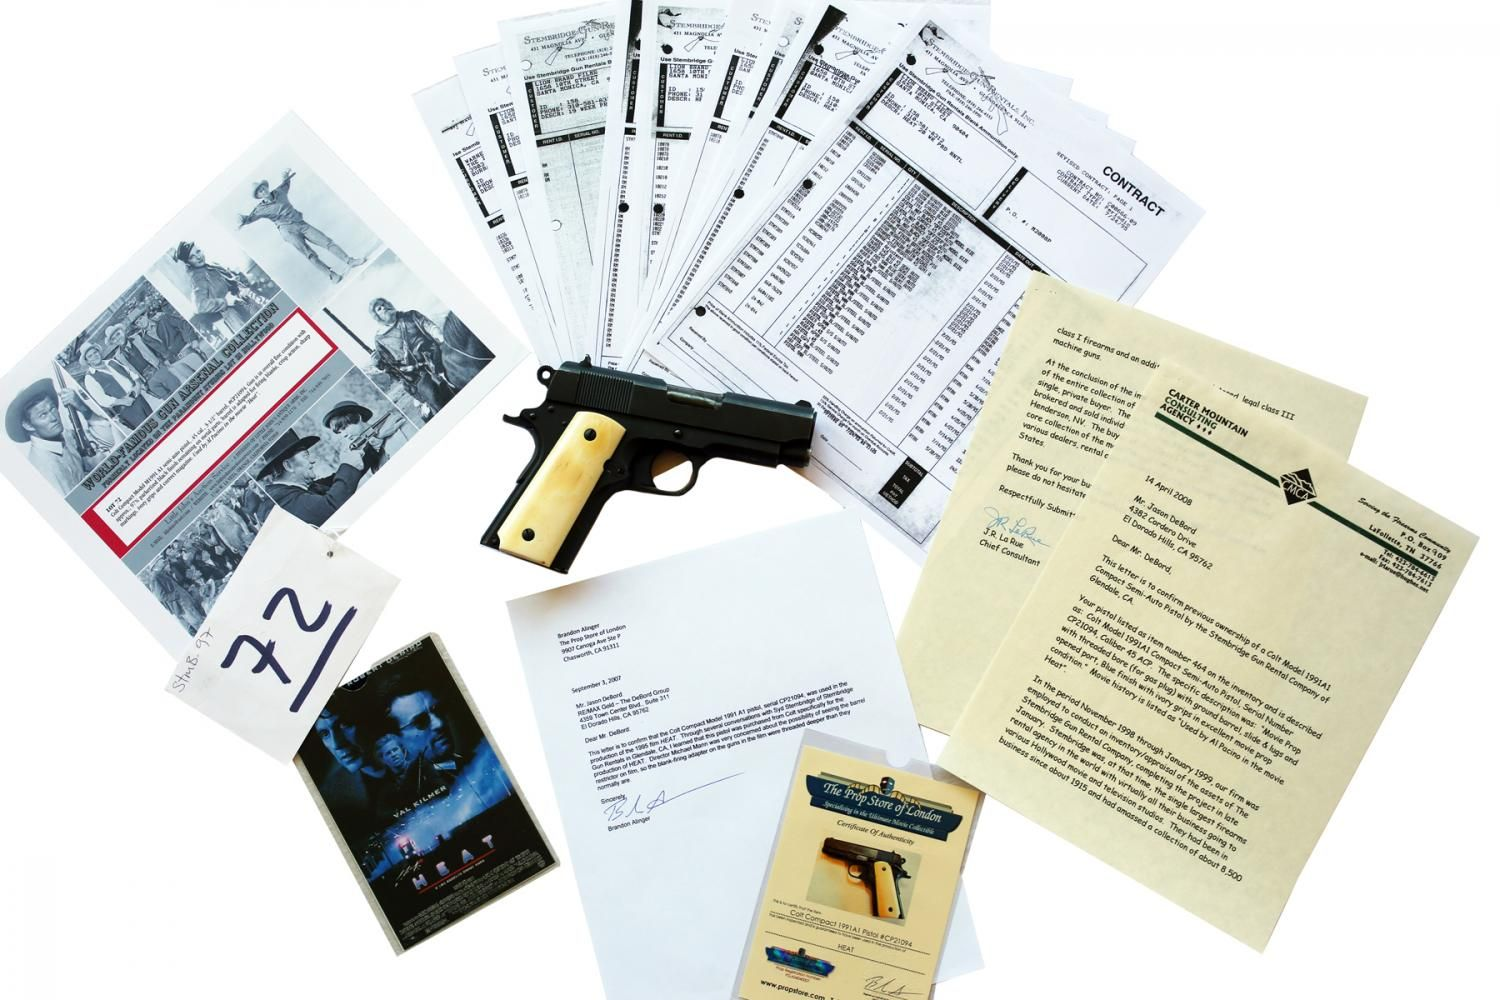 This prop gun comes with a significant amount of documentation certifying it as the real screen-used firearm.